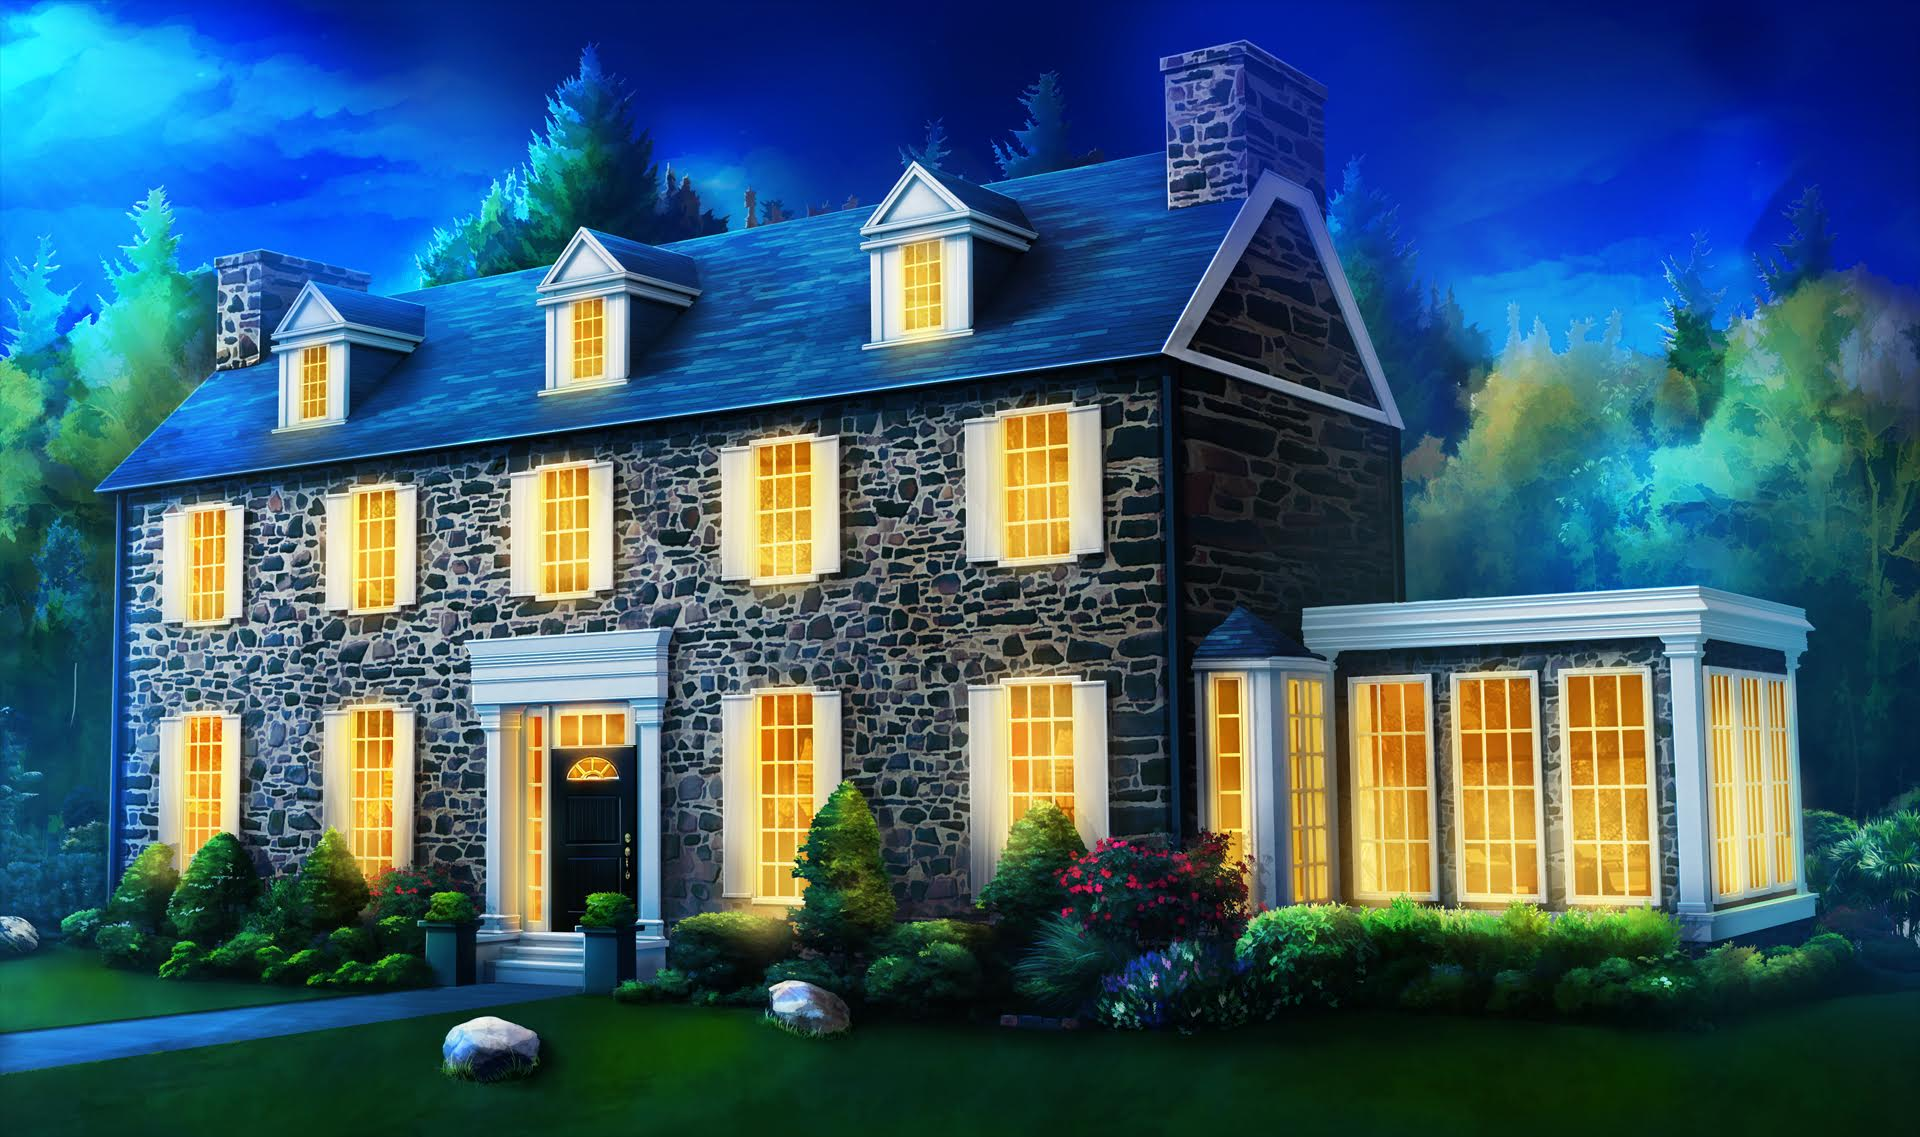 ext philadelphia house night scenary anime pinterest